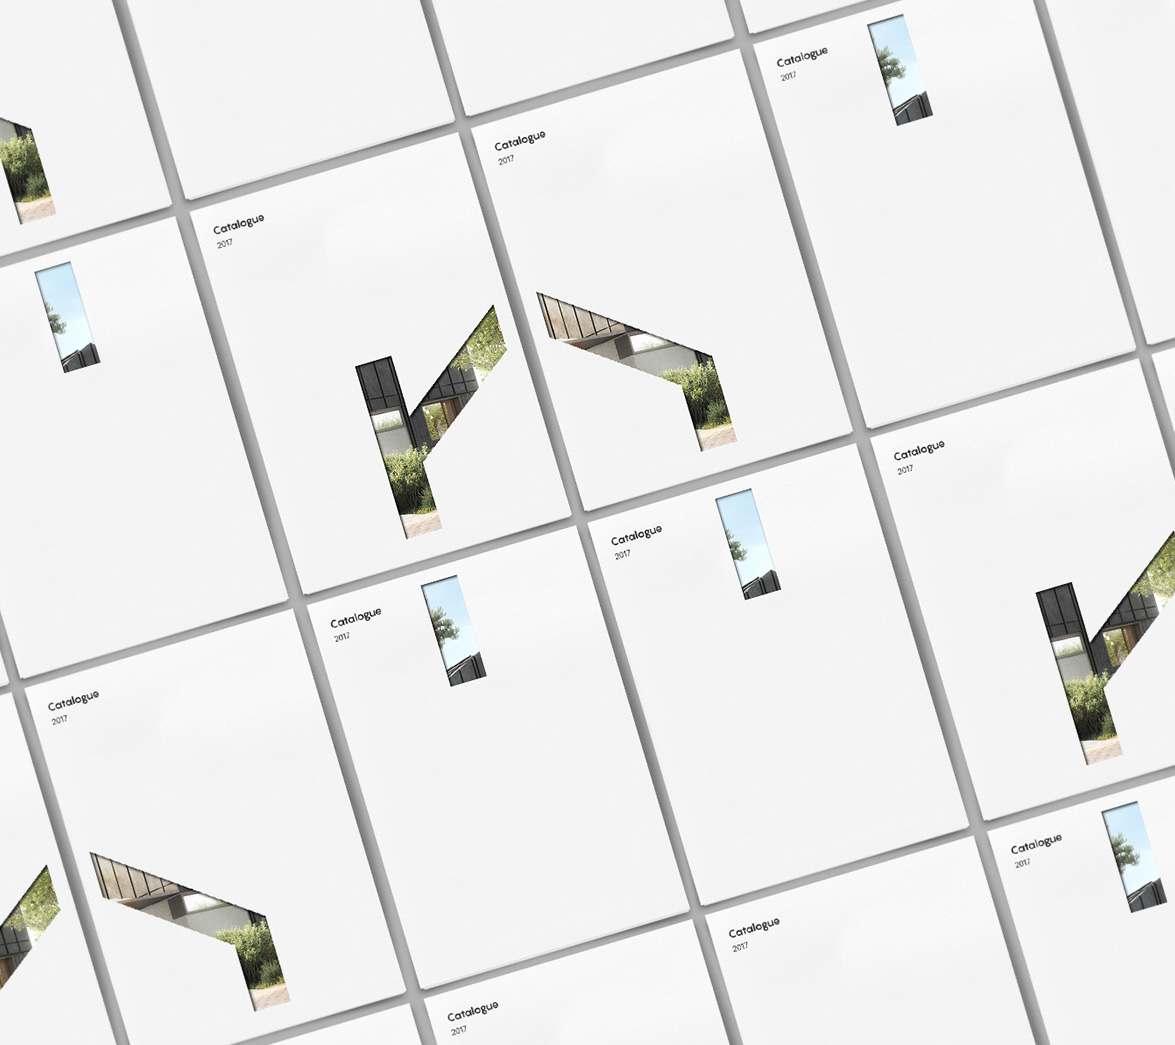 Brochure design for architecture startup brand nHouse, designed by White Bear Studio